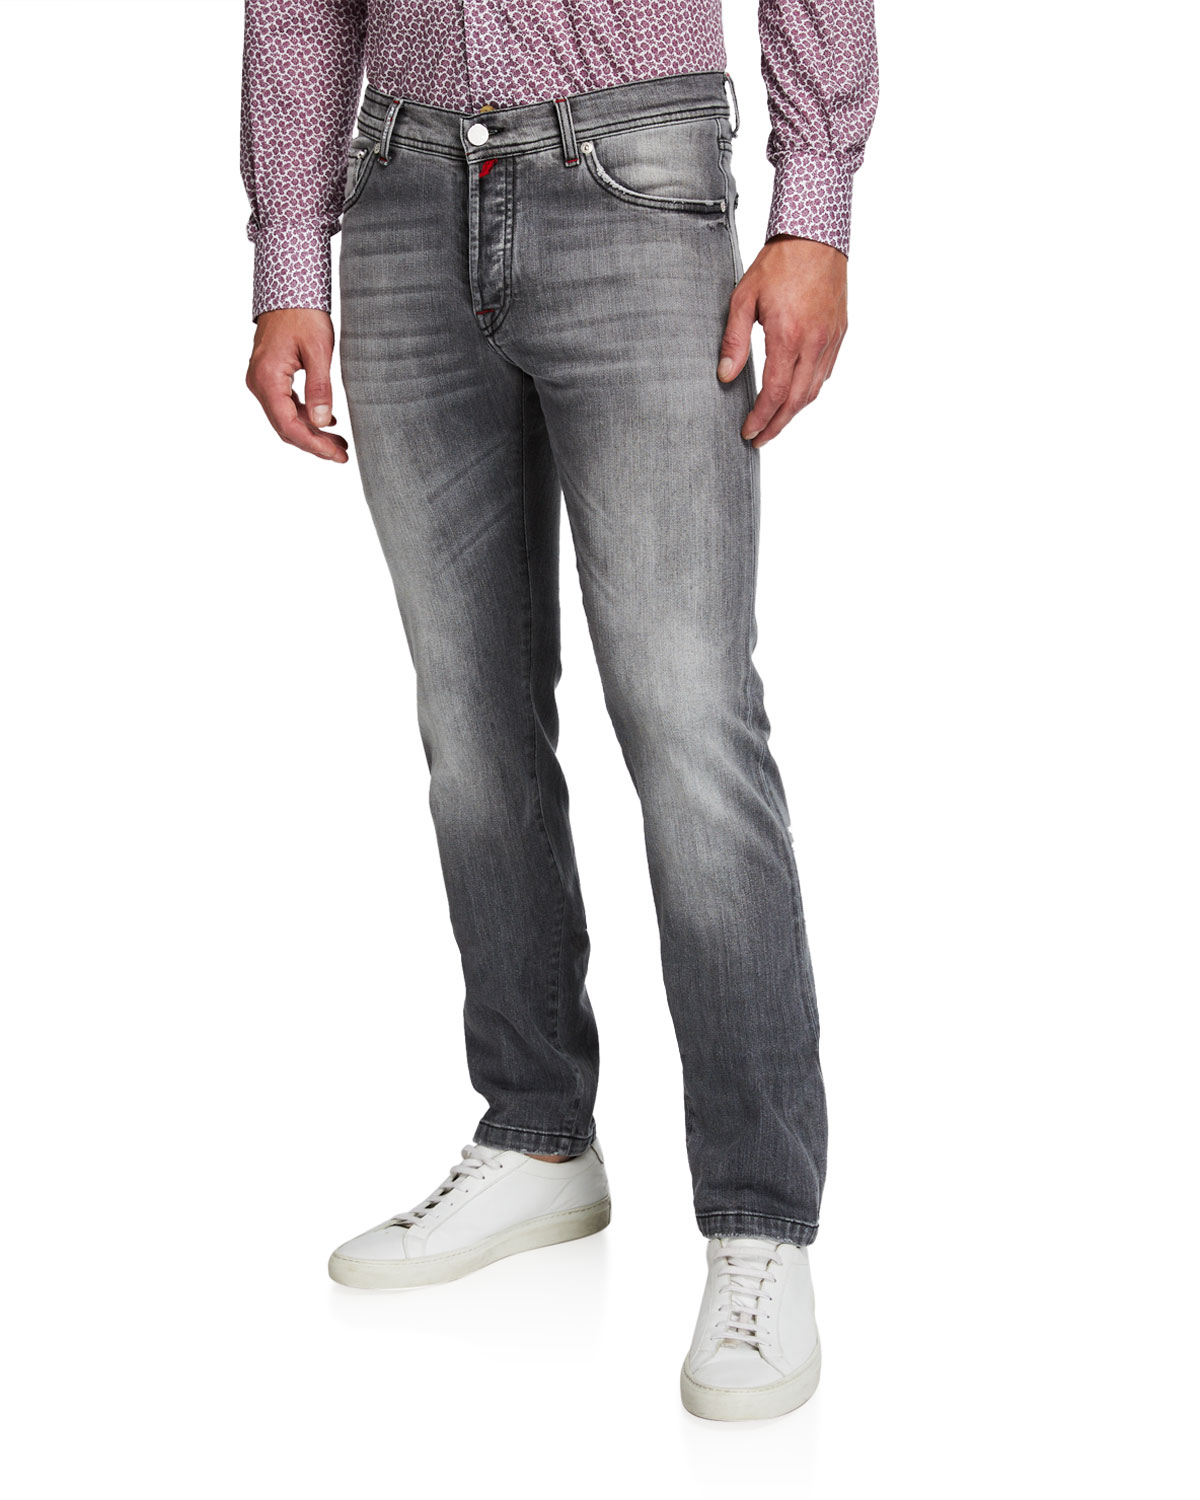 Kiton Jeans MEN'S GRAY-WASHED DISTRESSED JEANS